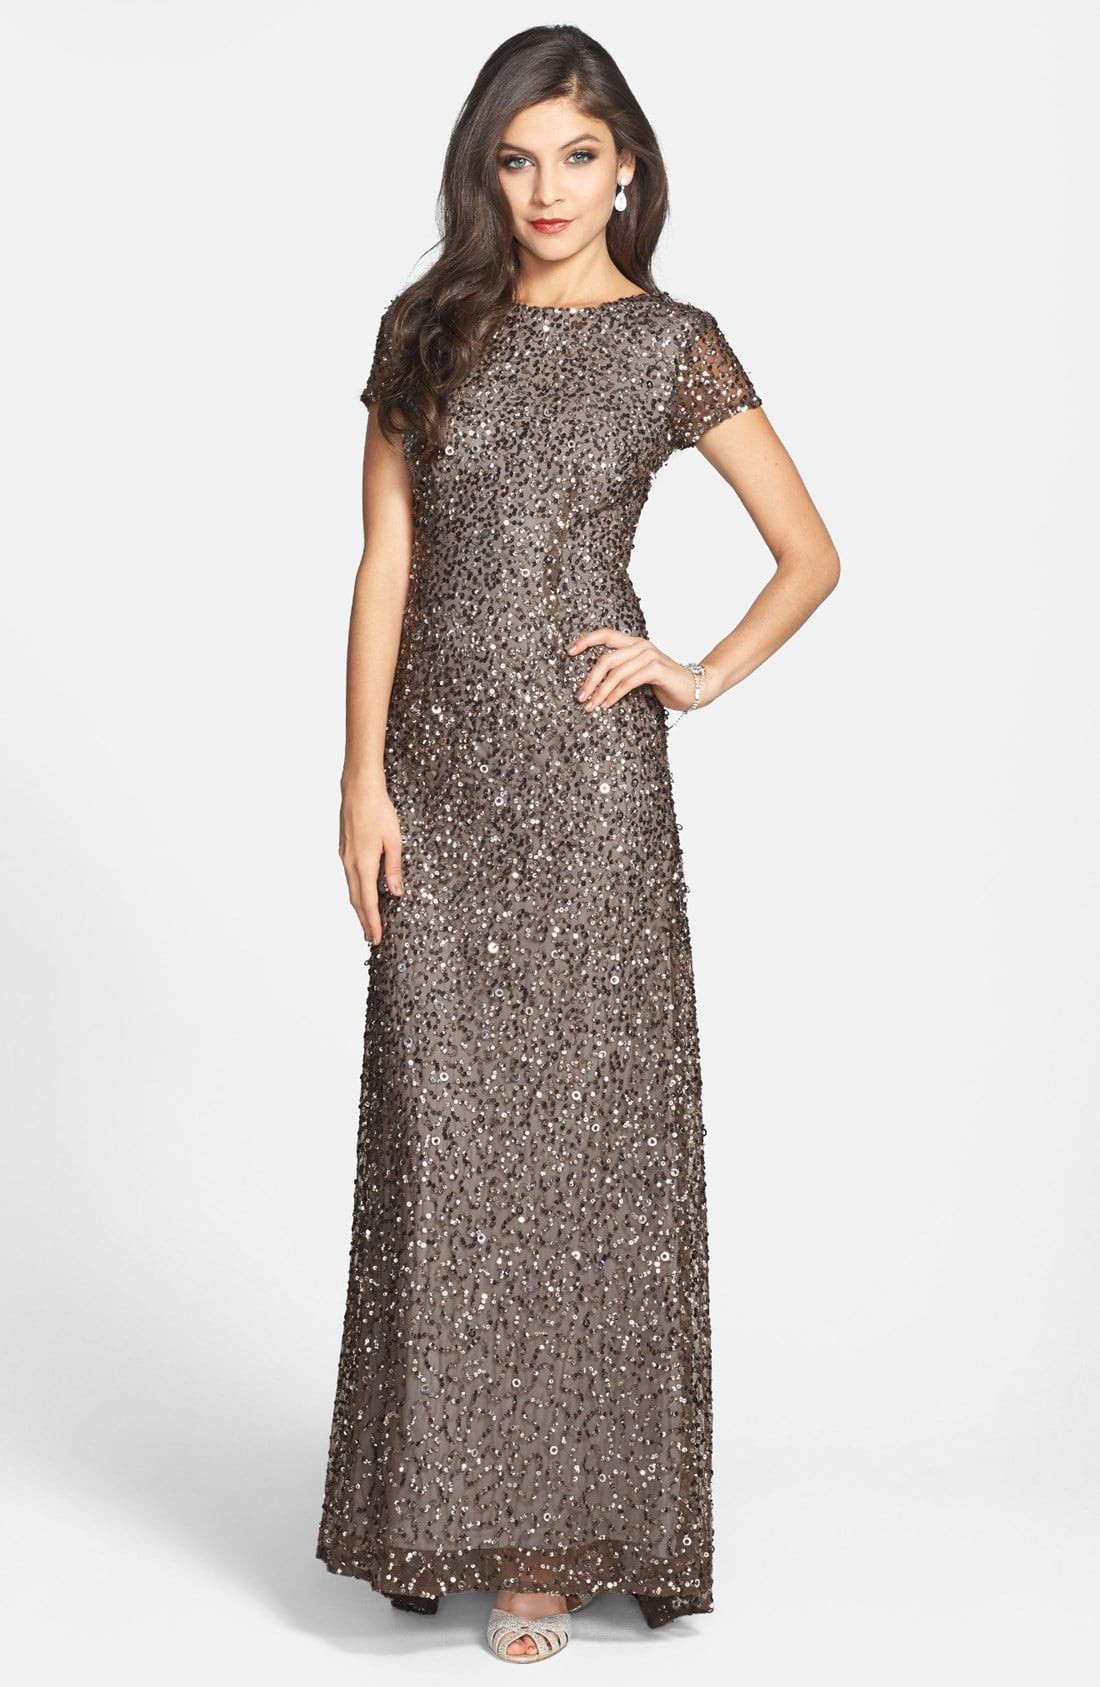 34 glamorous and gorgeous sequin bridesmaids dresses junebug shop silver sequin bridesmaids dresses ombrellifo Choice Image